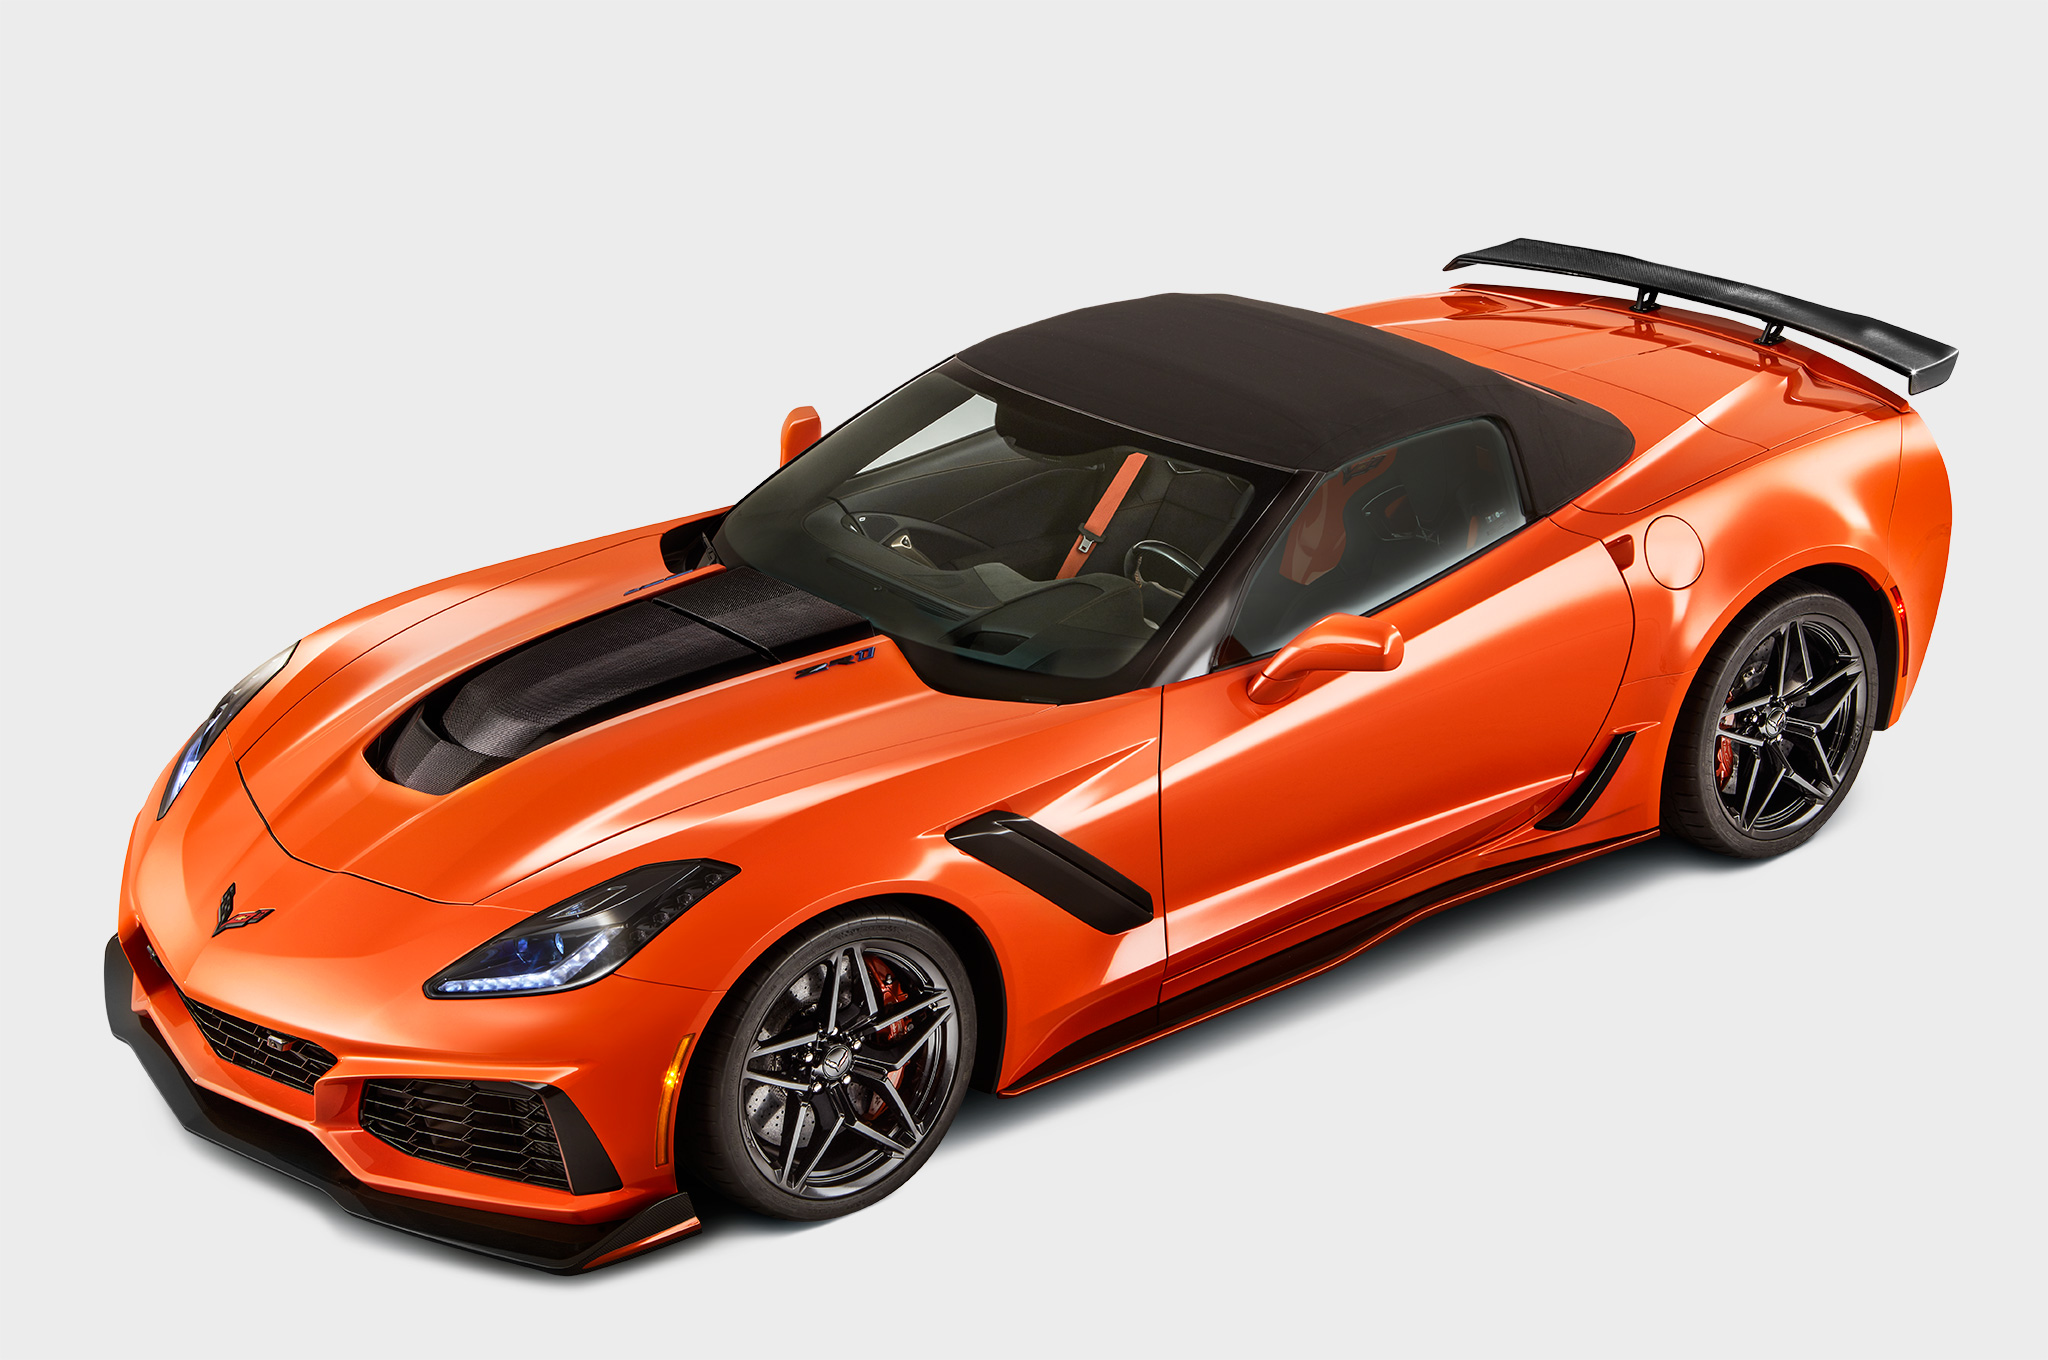 GM Releases Pricing for the 2019 Corvette Model Year